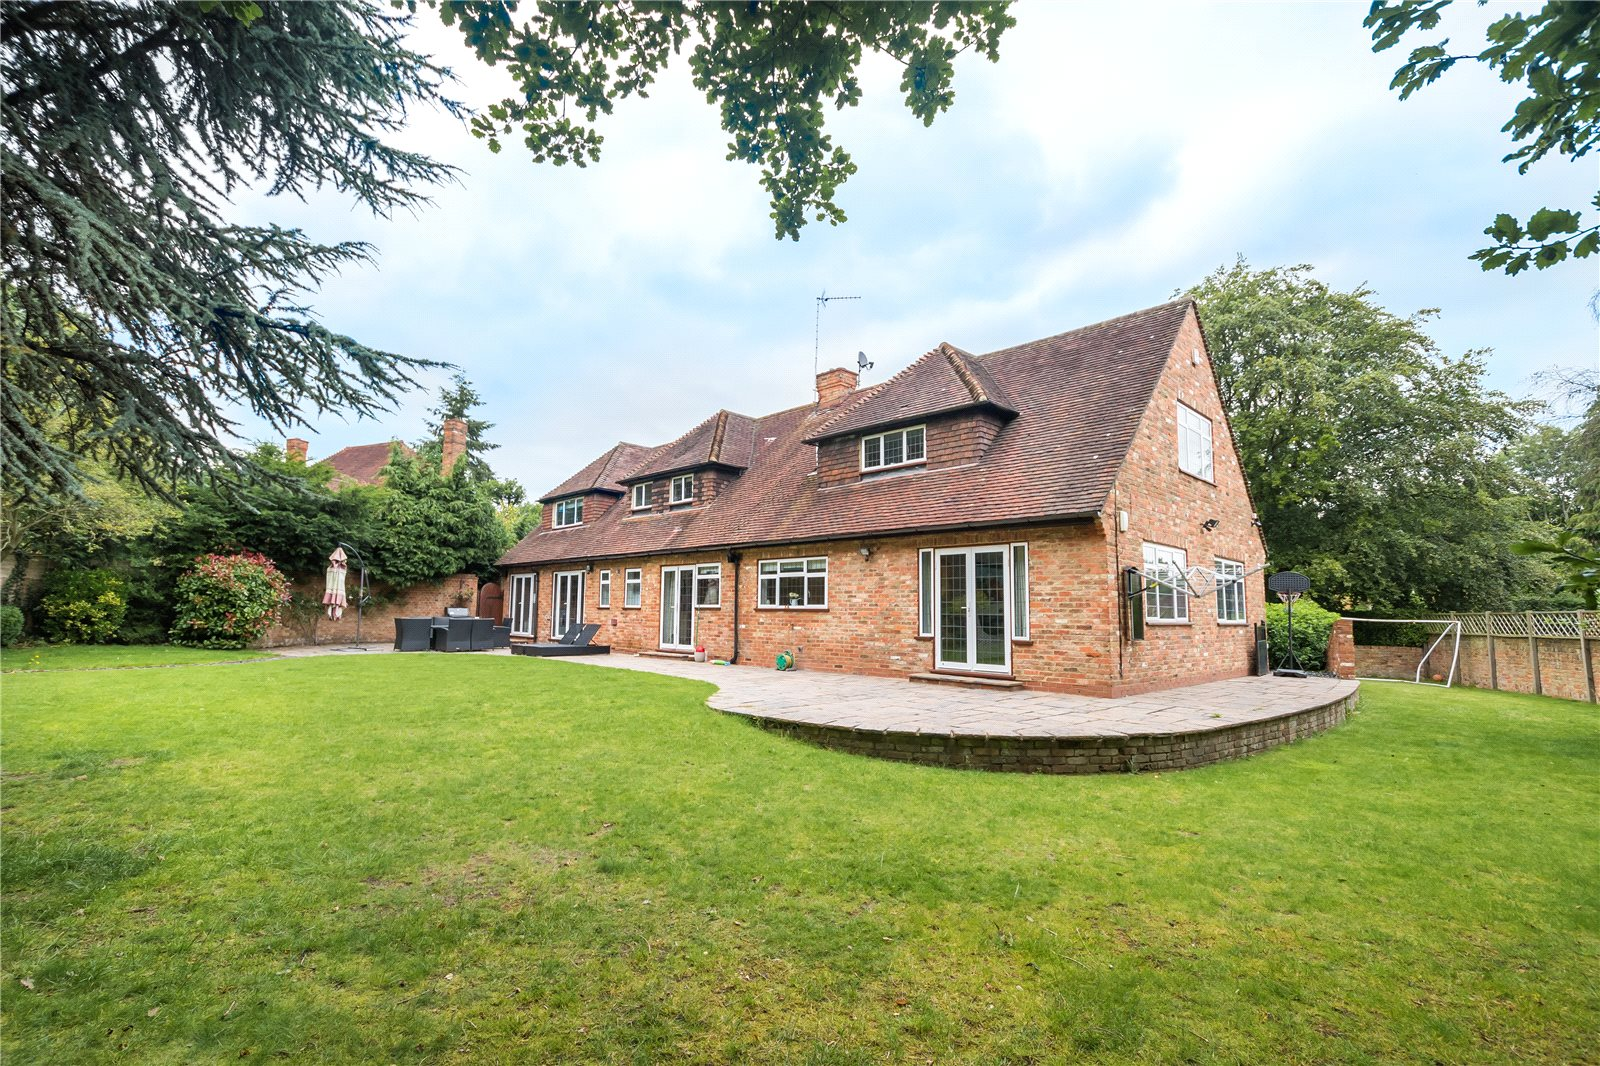 Additional photo for property listing at Howards Thicket, Gerrards Cross, Buckinghamshire, SL9 Gerrards Cross, England